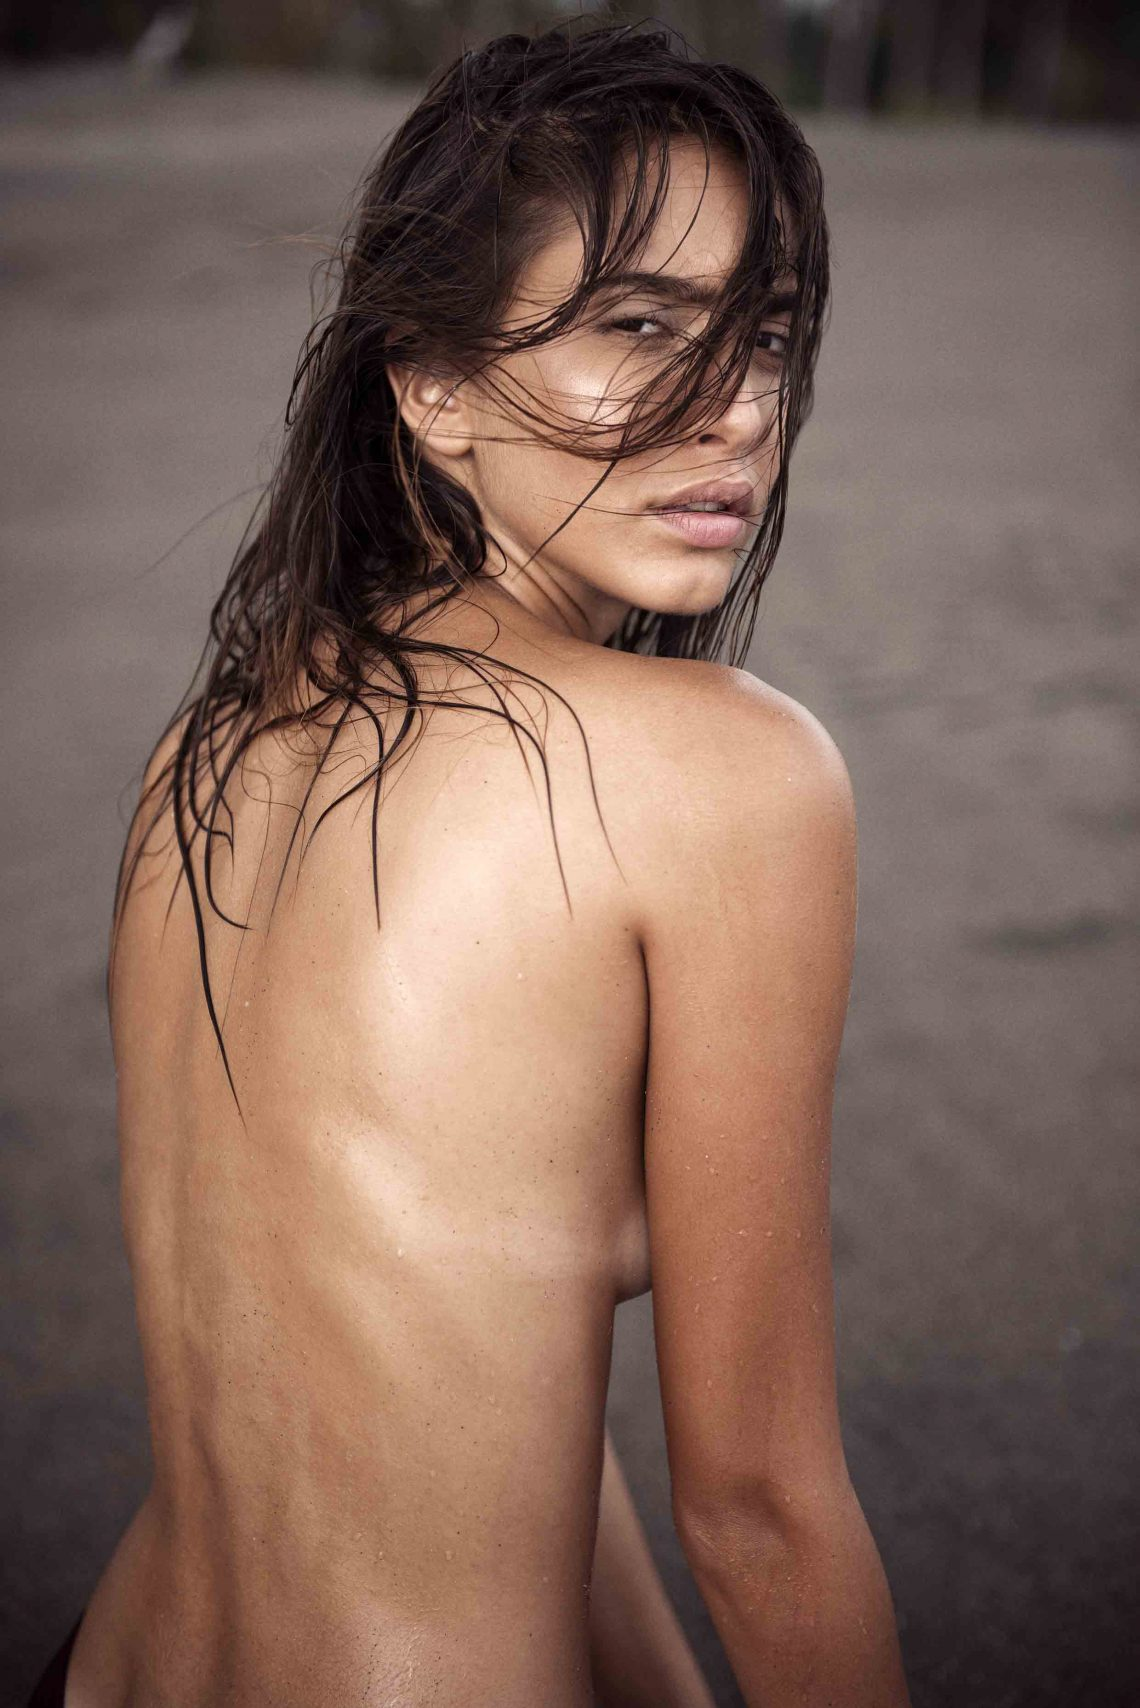 Balistarz-model-Sasha-AP-topless-portrait-going-wet-at-the-bali-beach